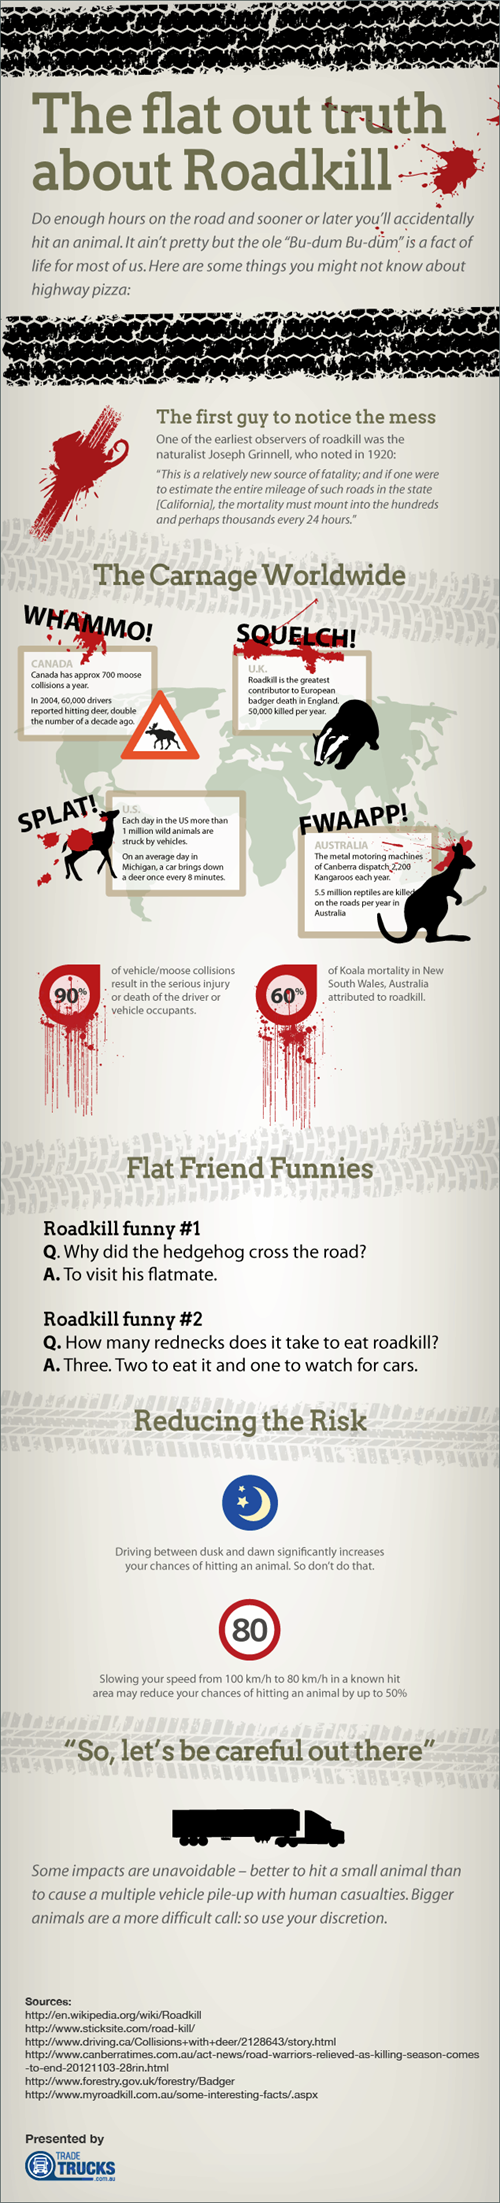 The Truth About Road Kill   #infographic